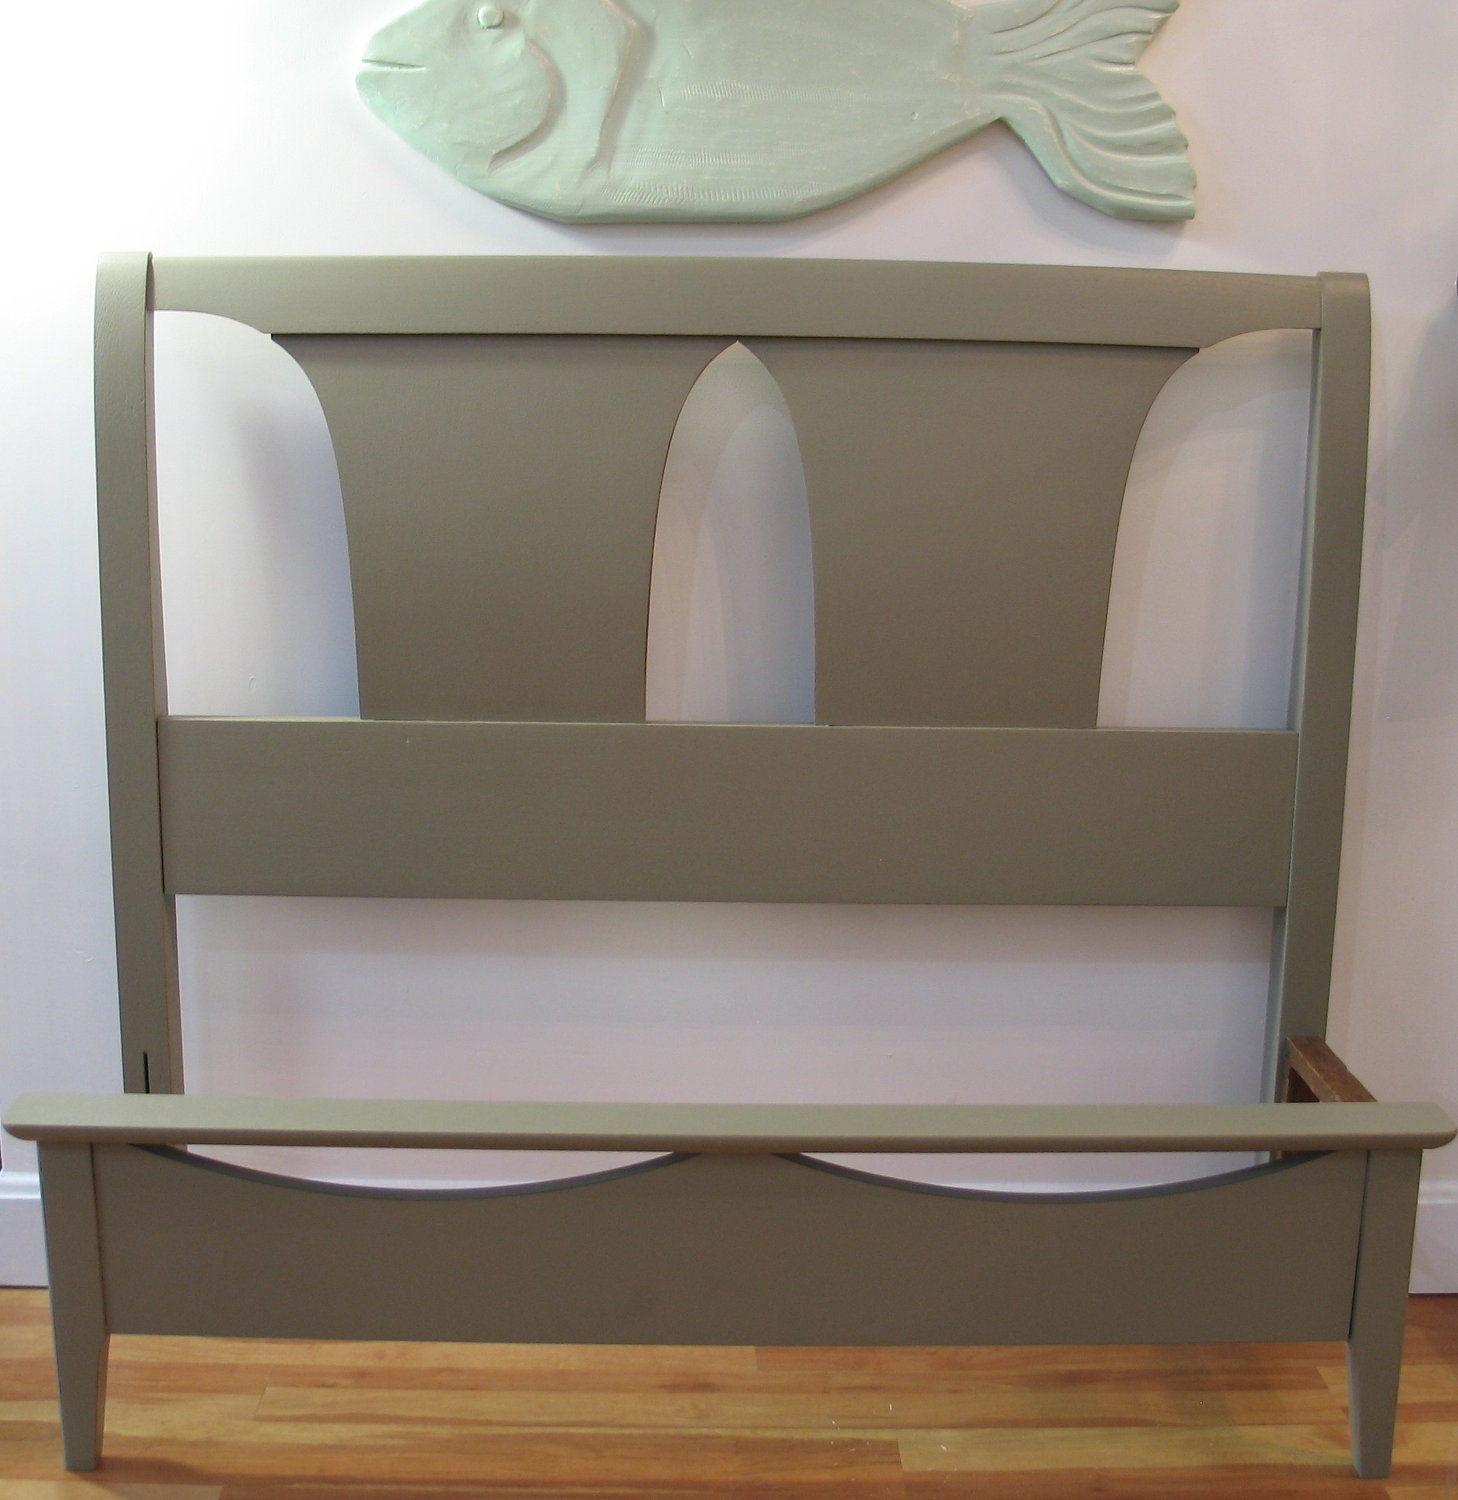 Mid Century Bed Mid Century: Mid-Century Modern Twin Bed